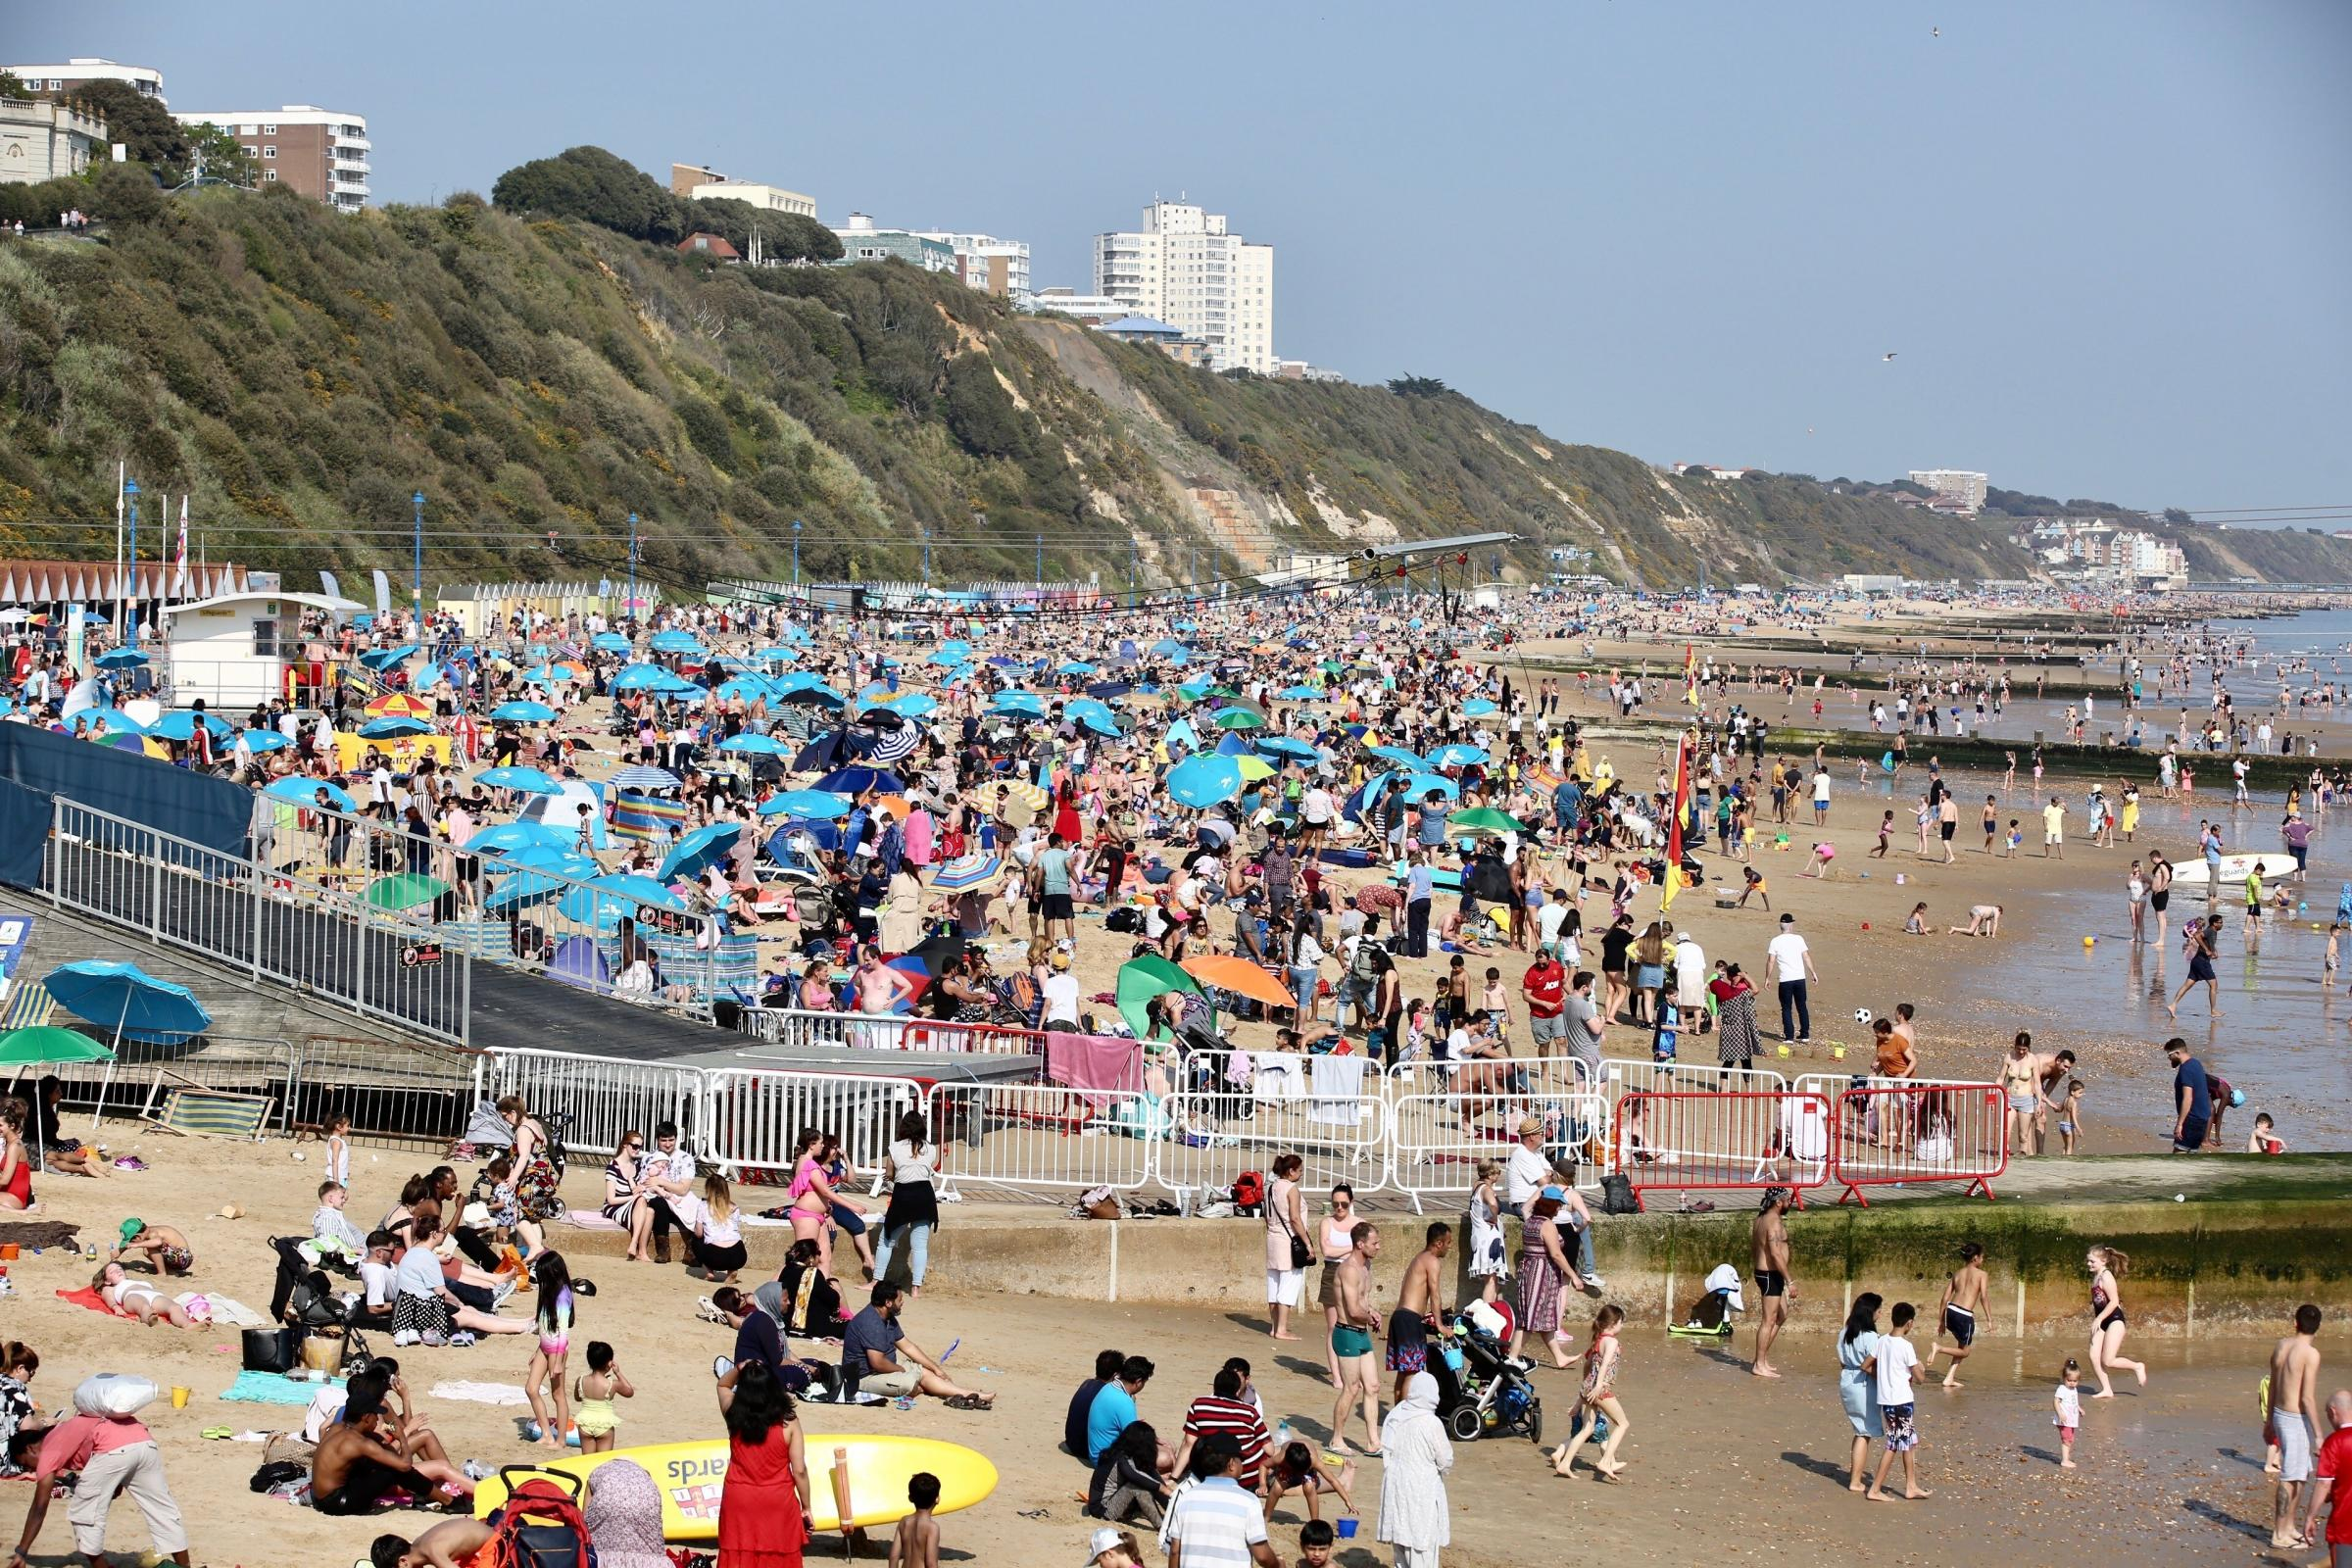 30,000 ice creams sold and 2,047 deckchairs hired: Bournemouth's bumper Easter weekend